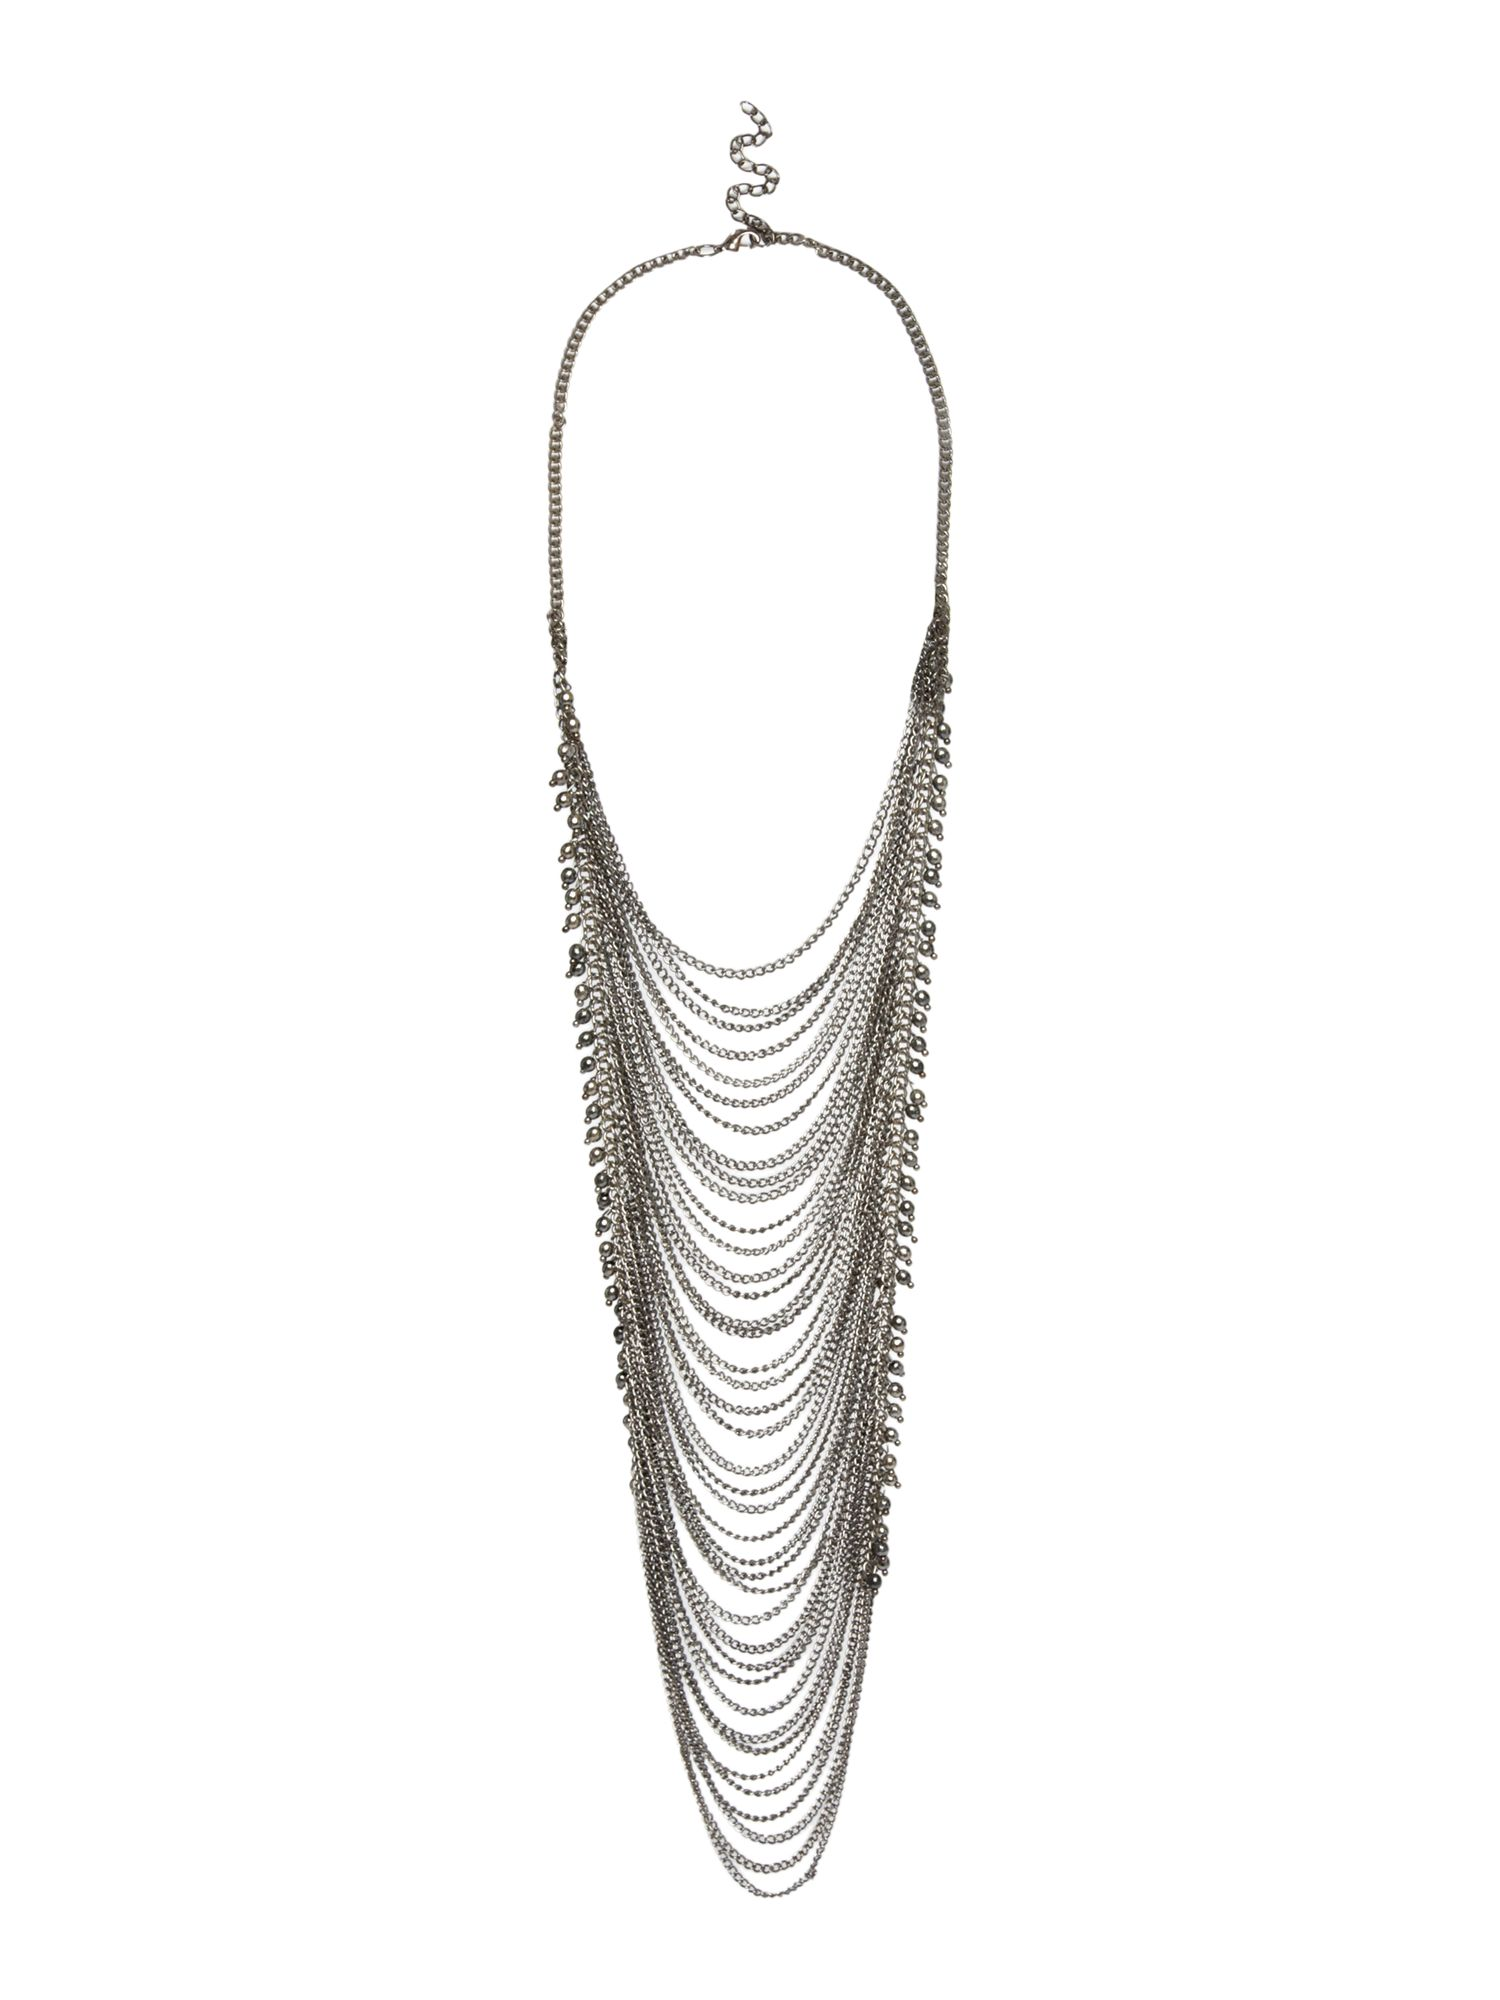 Looped chain long necklace